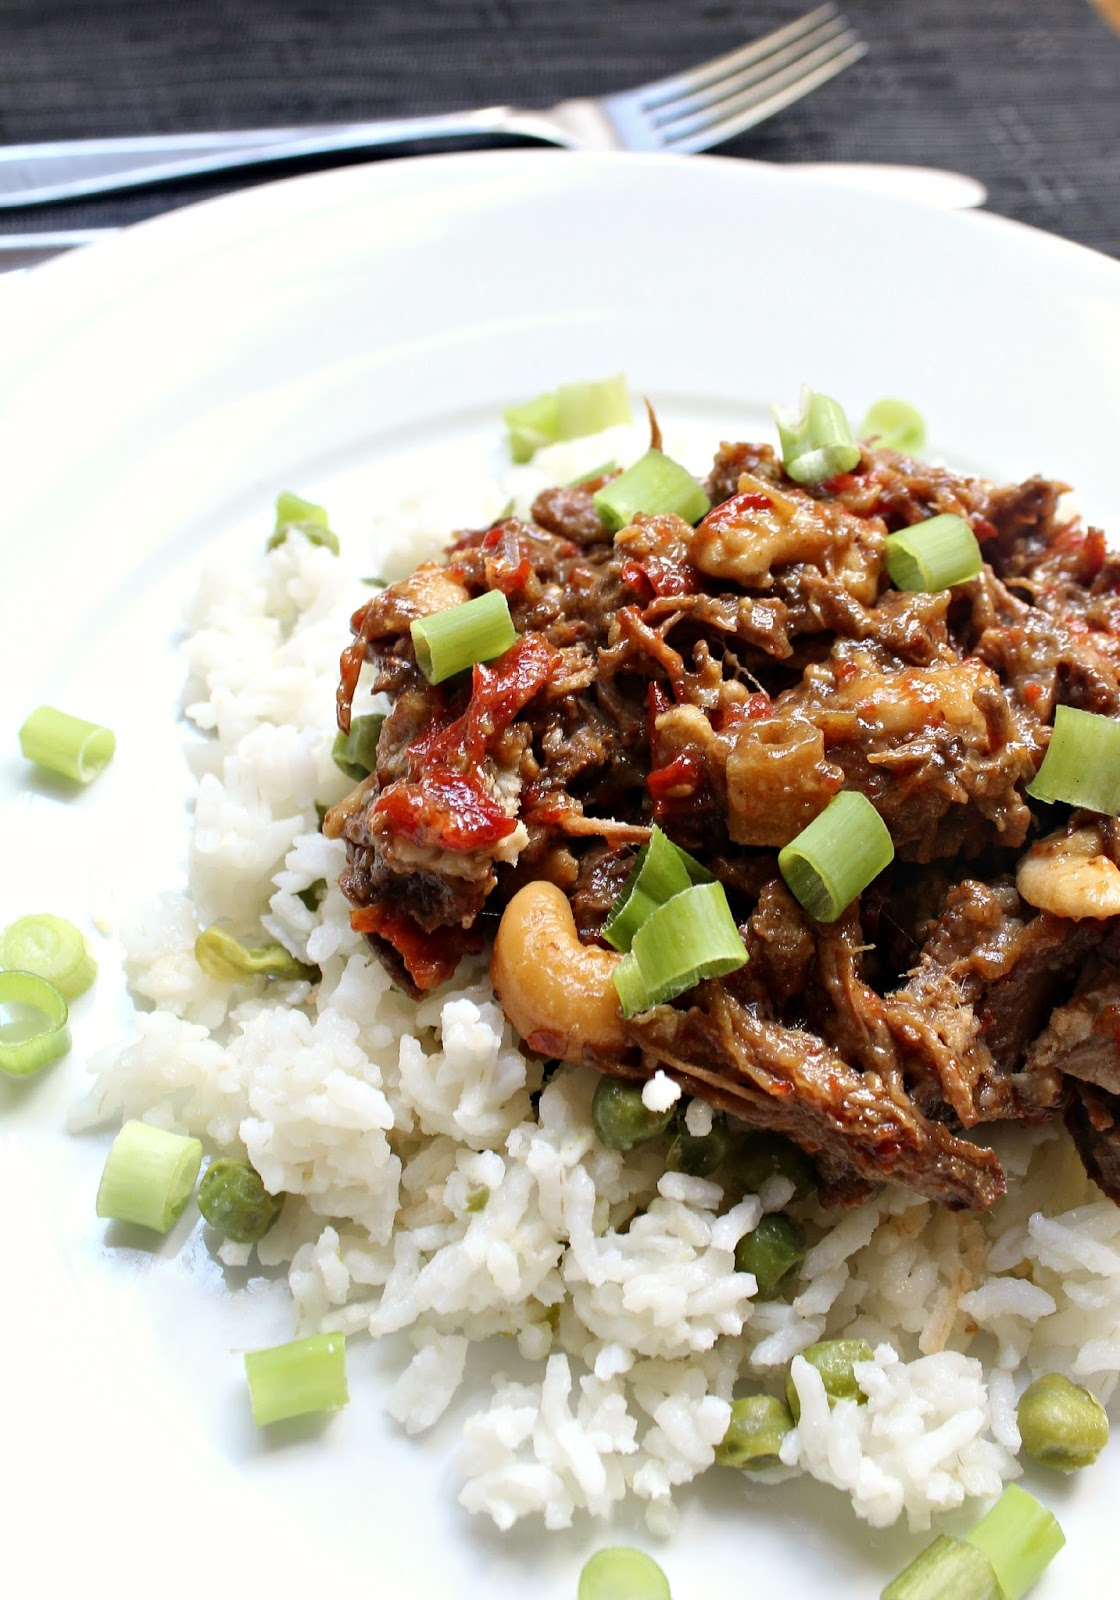 Slow cooker asian style